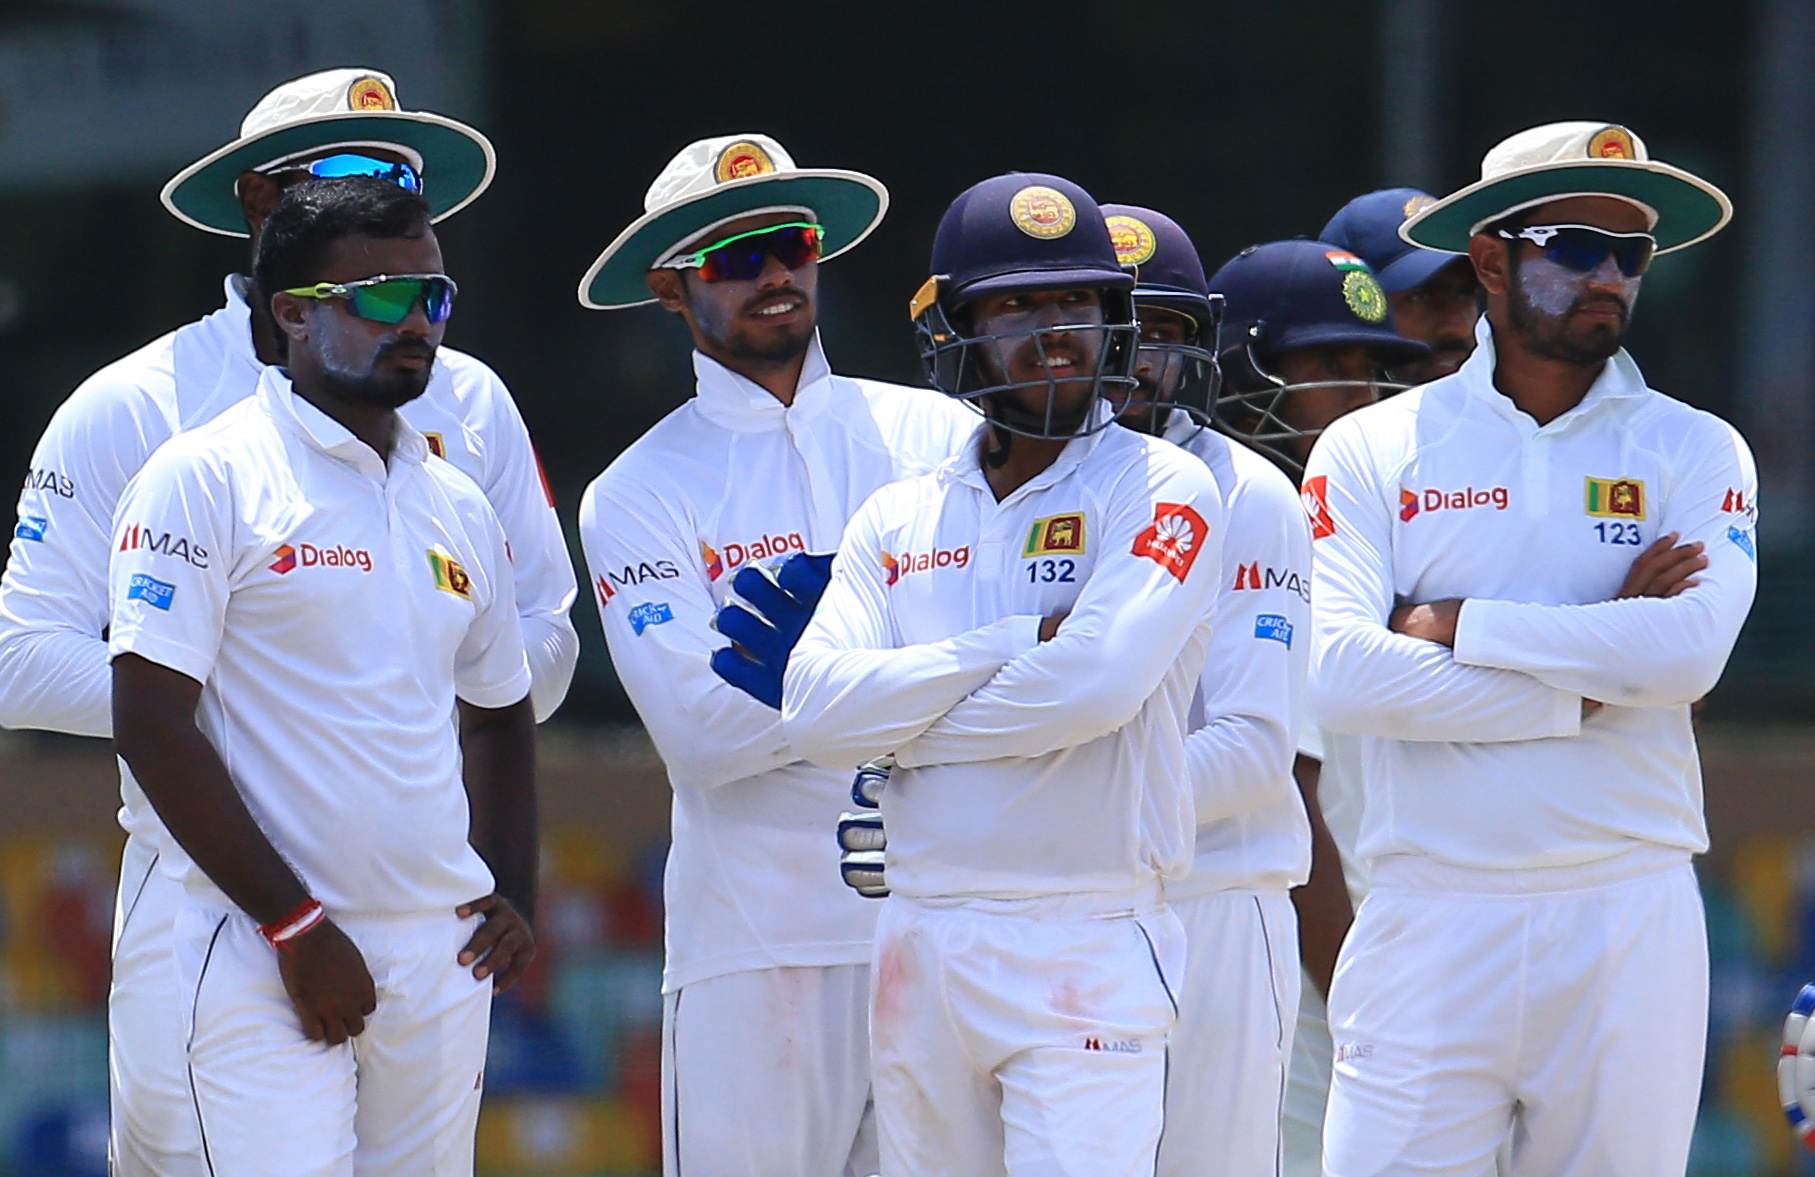 Sri Lanka 19/1 after following-on, trail India by 333 runs